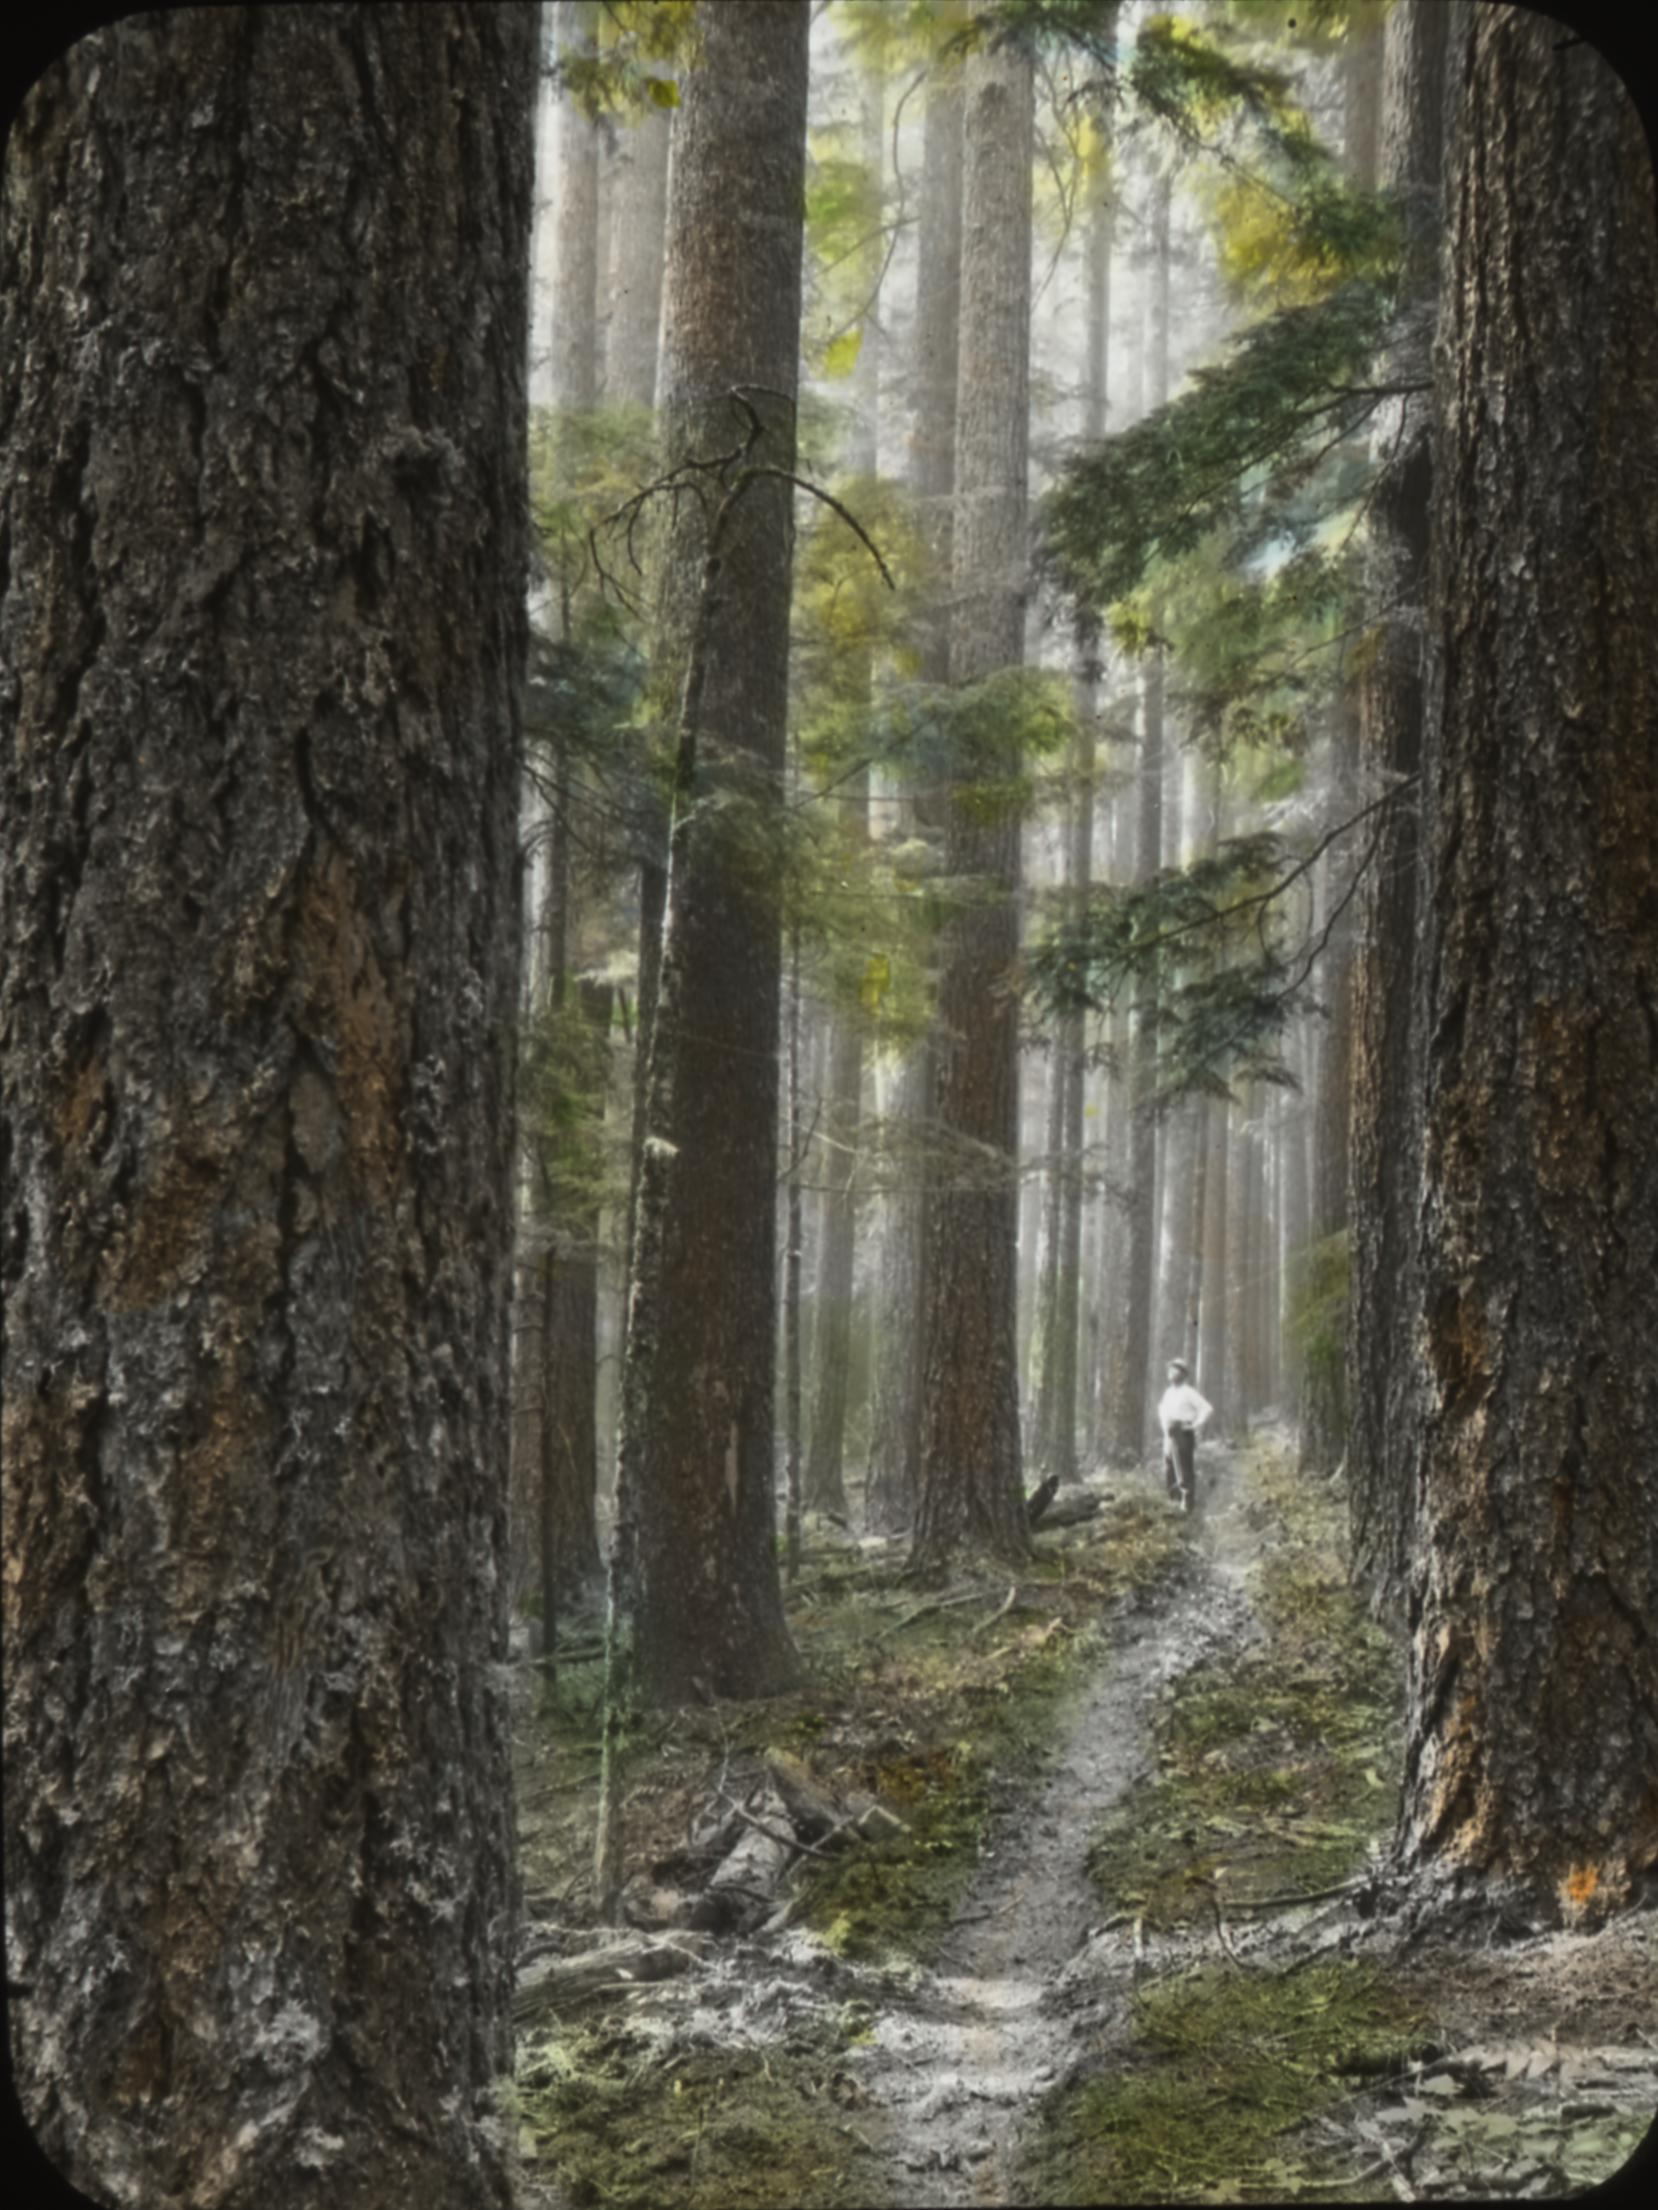 Typical Oregon forest: enchanting and peaceful | Flickr ...